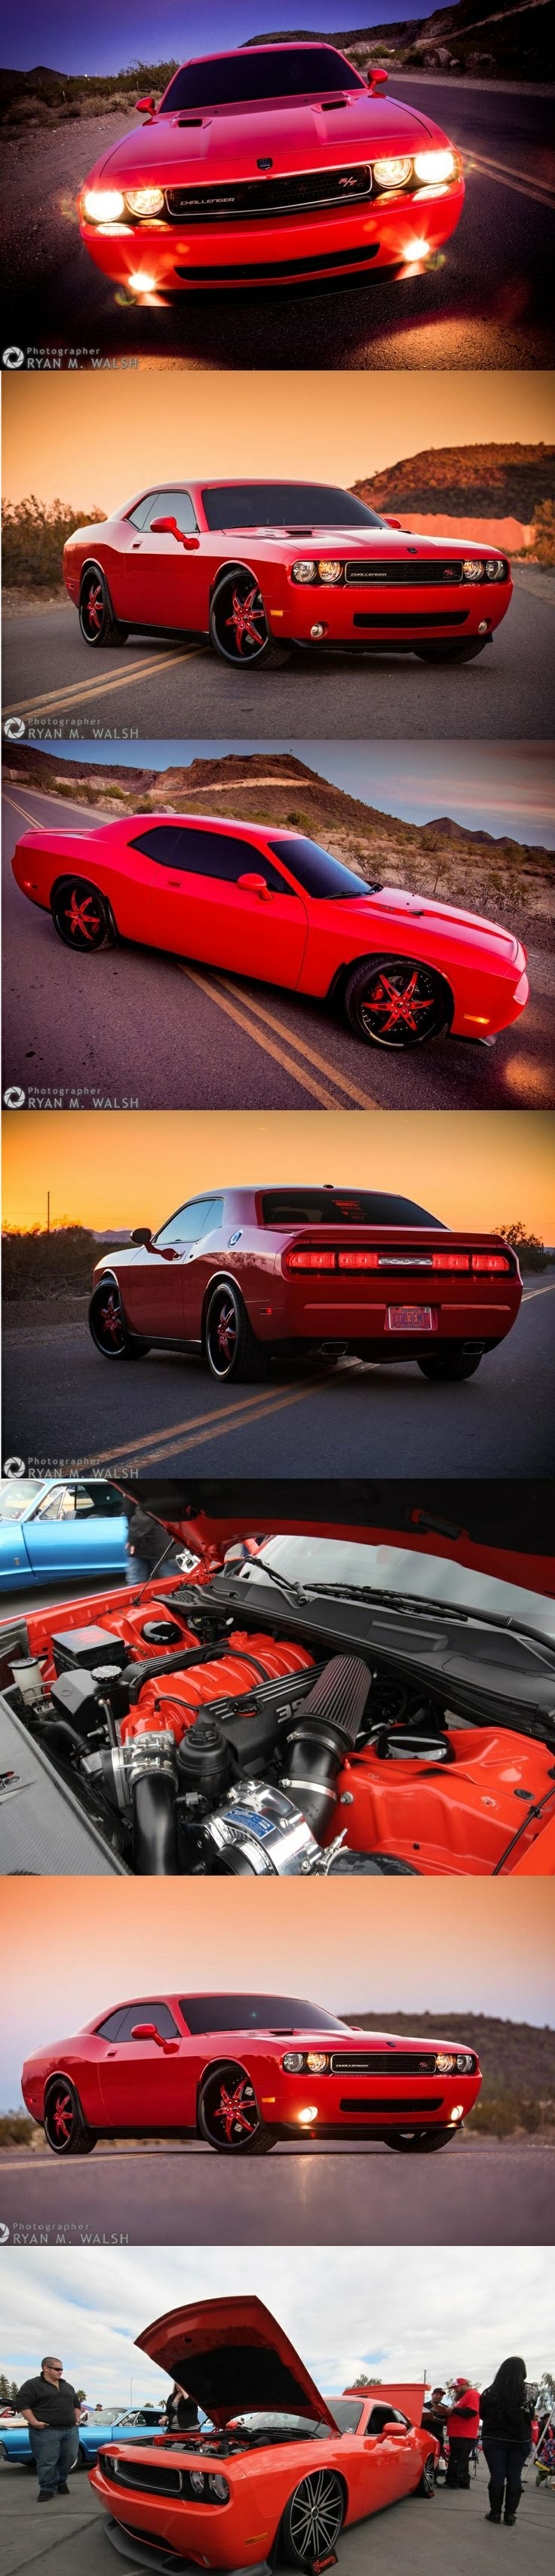 Sal Danley's ProCharged 2010 Dodge Challenger R/T